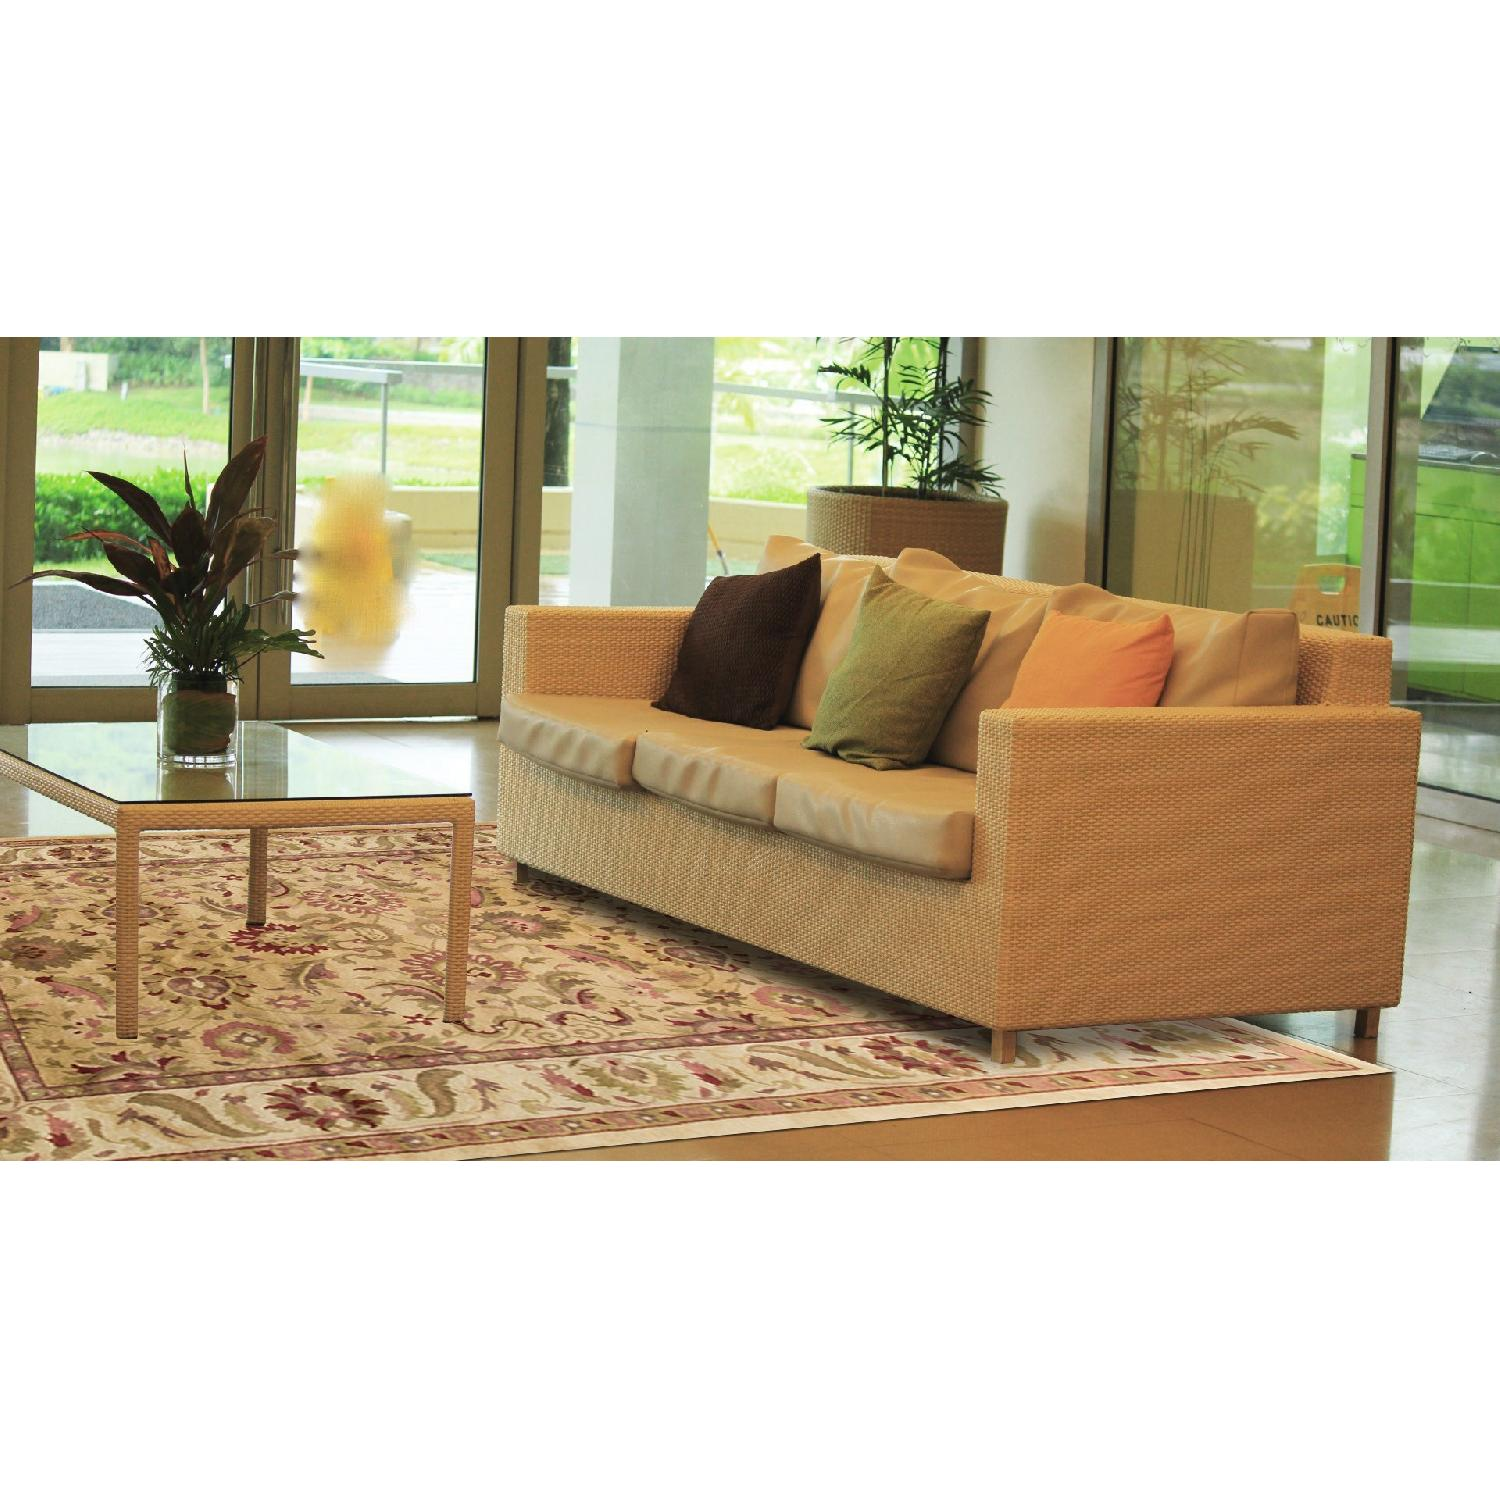 Modern Contemporary Hand Knotted Wool Rug in Multi Colors - image-3